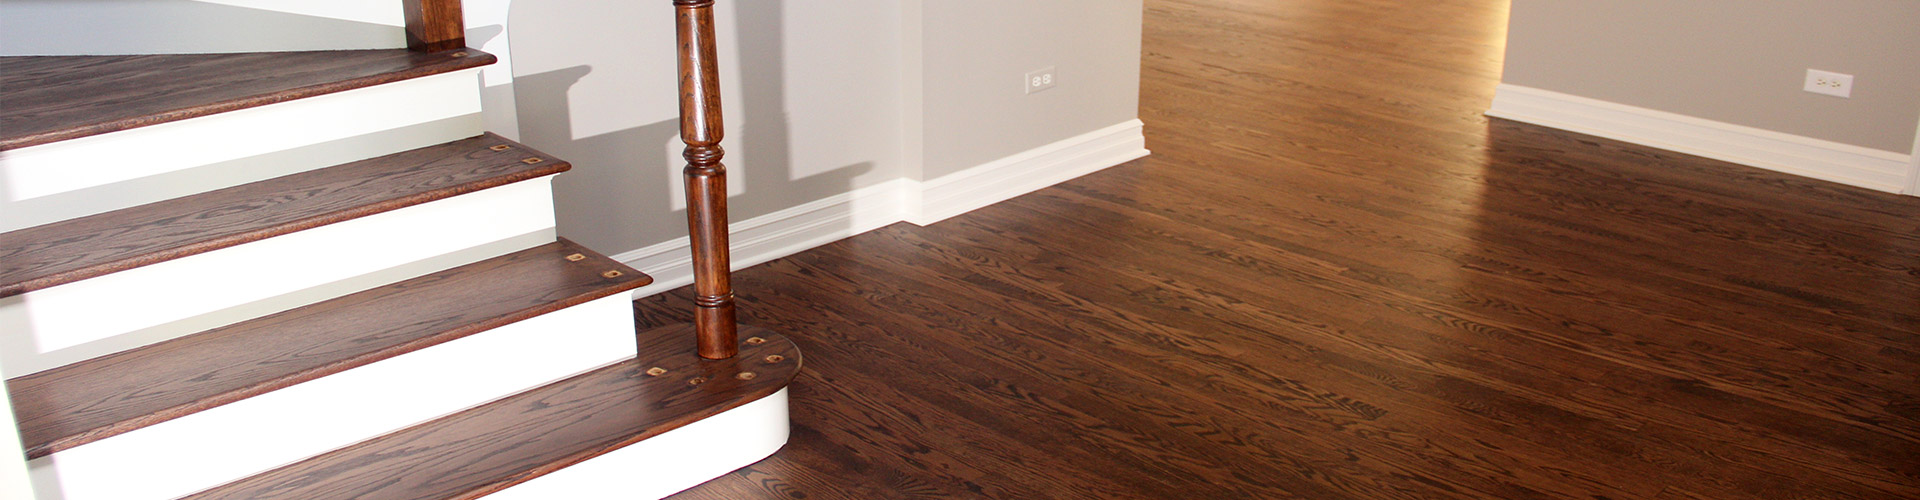 Ryno custom flooring inc custom hardwood floor for Custom hardwood flooring